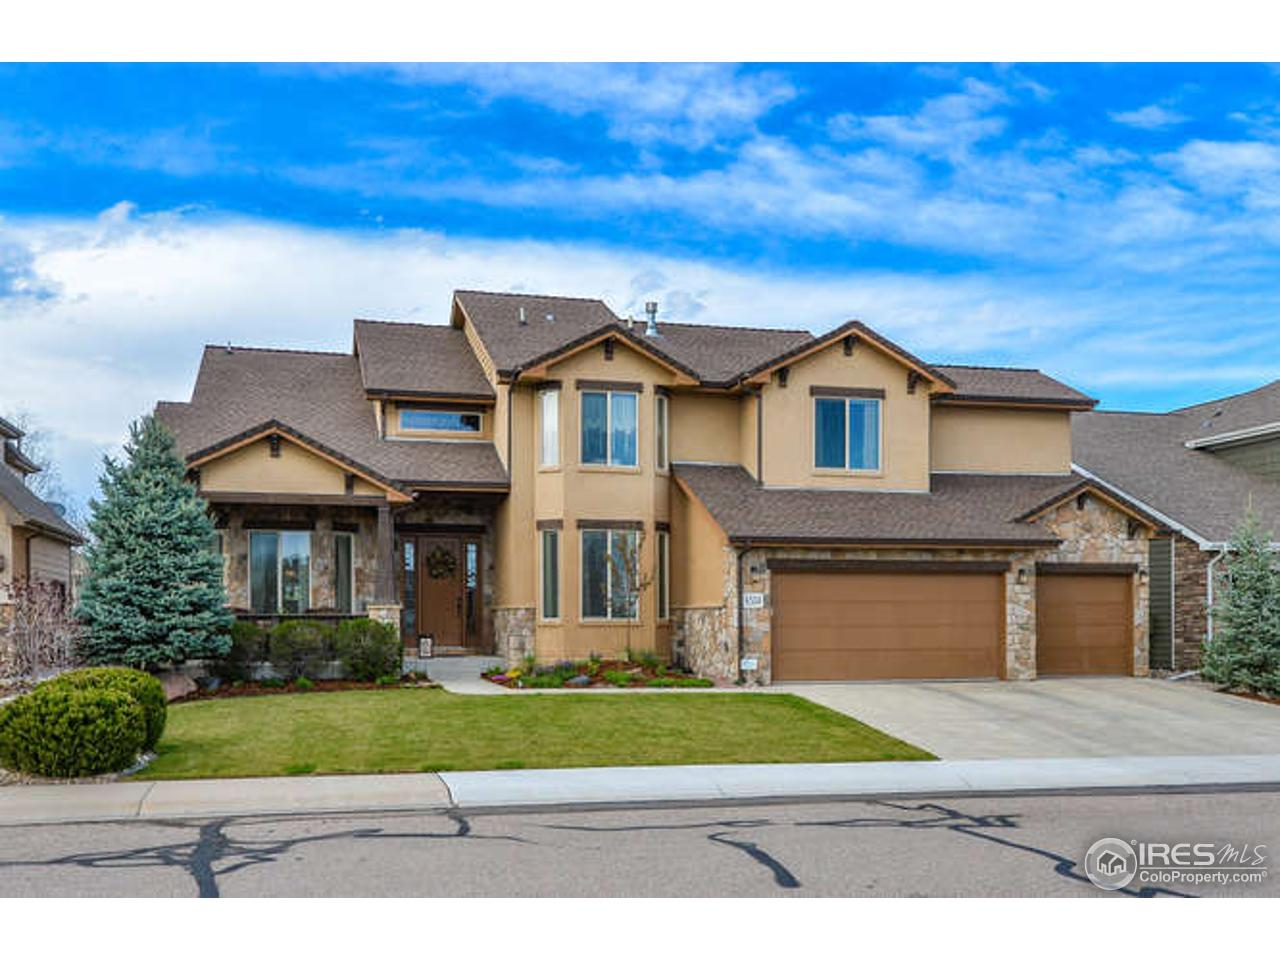 6504 Aberdour Cir, Windsor, CO 80550